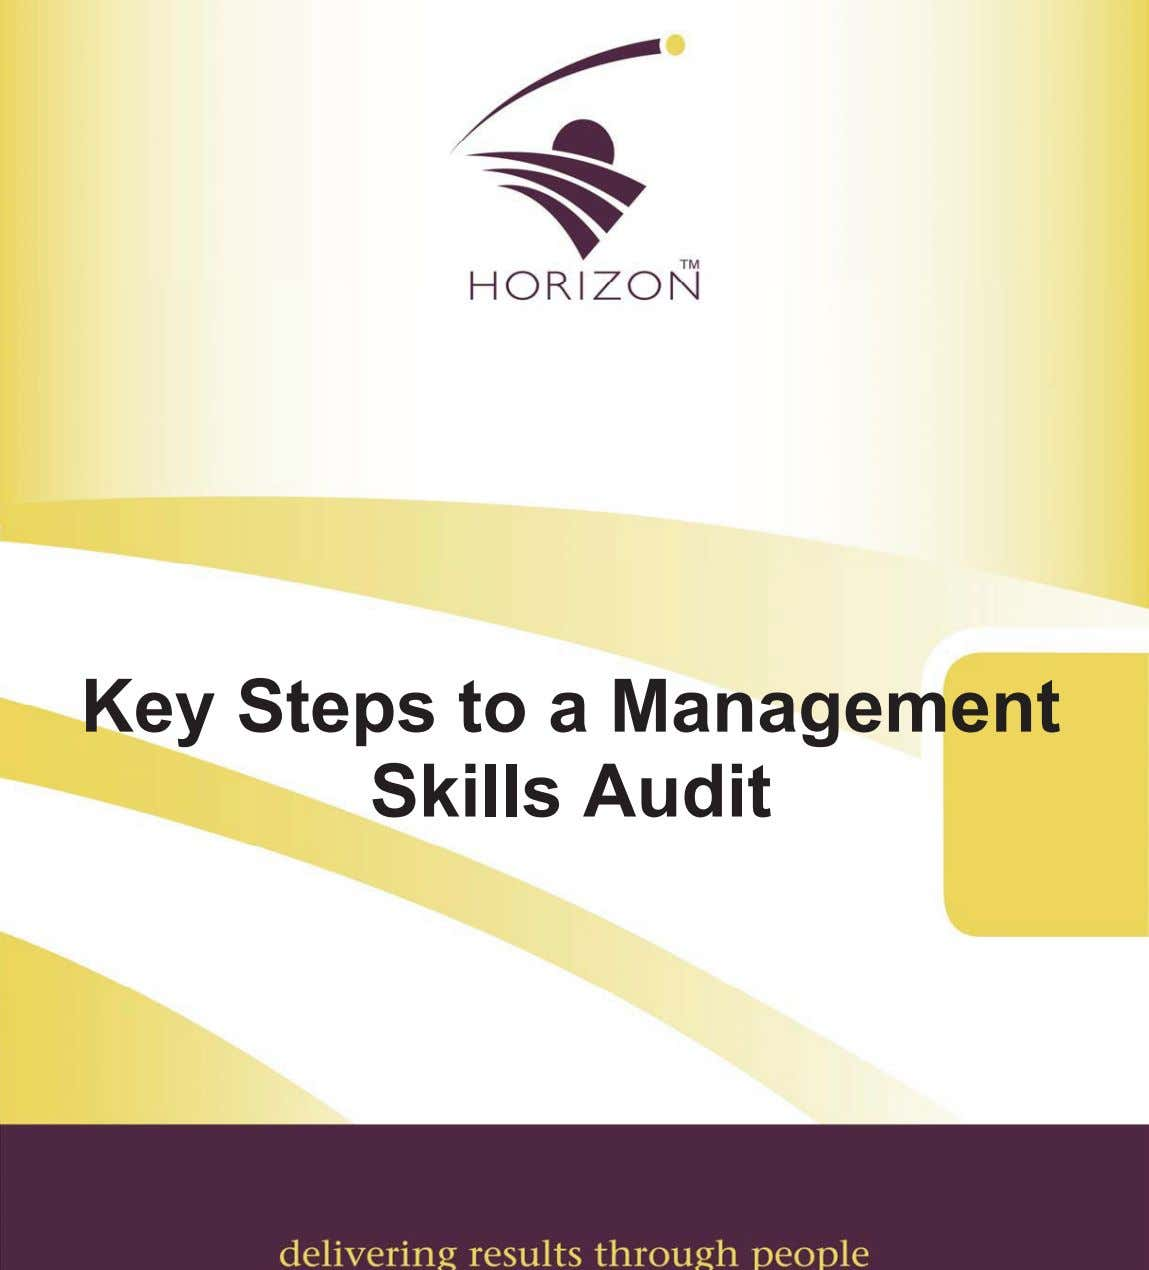 Key Steps to a Management Skills Audit